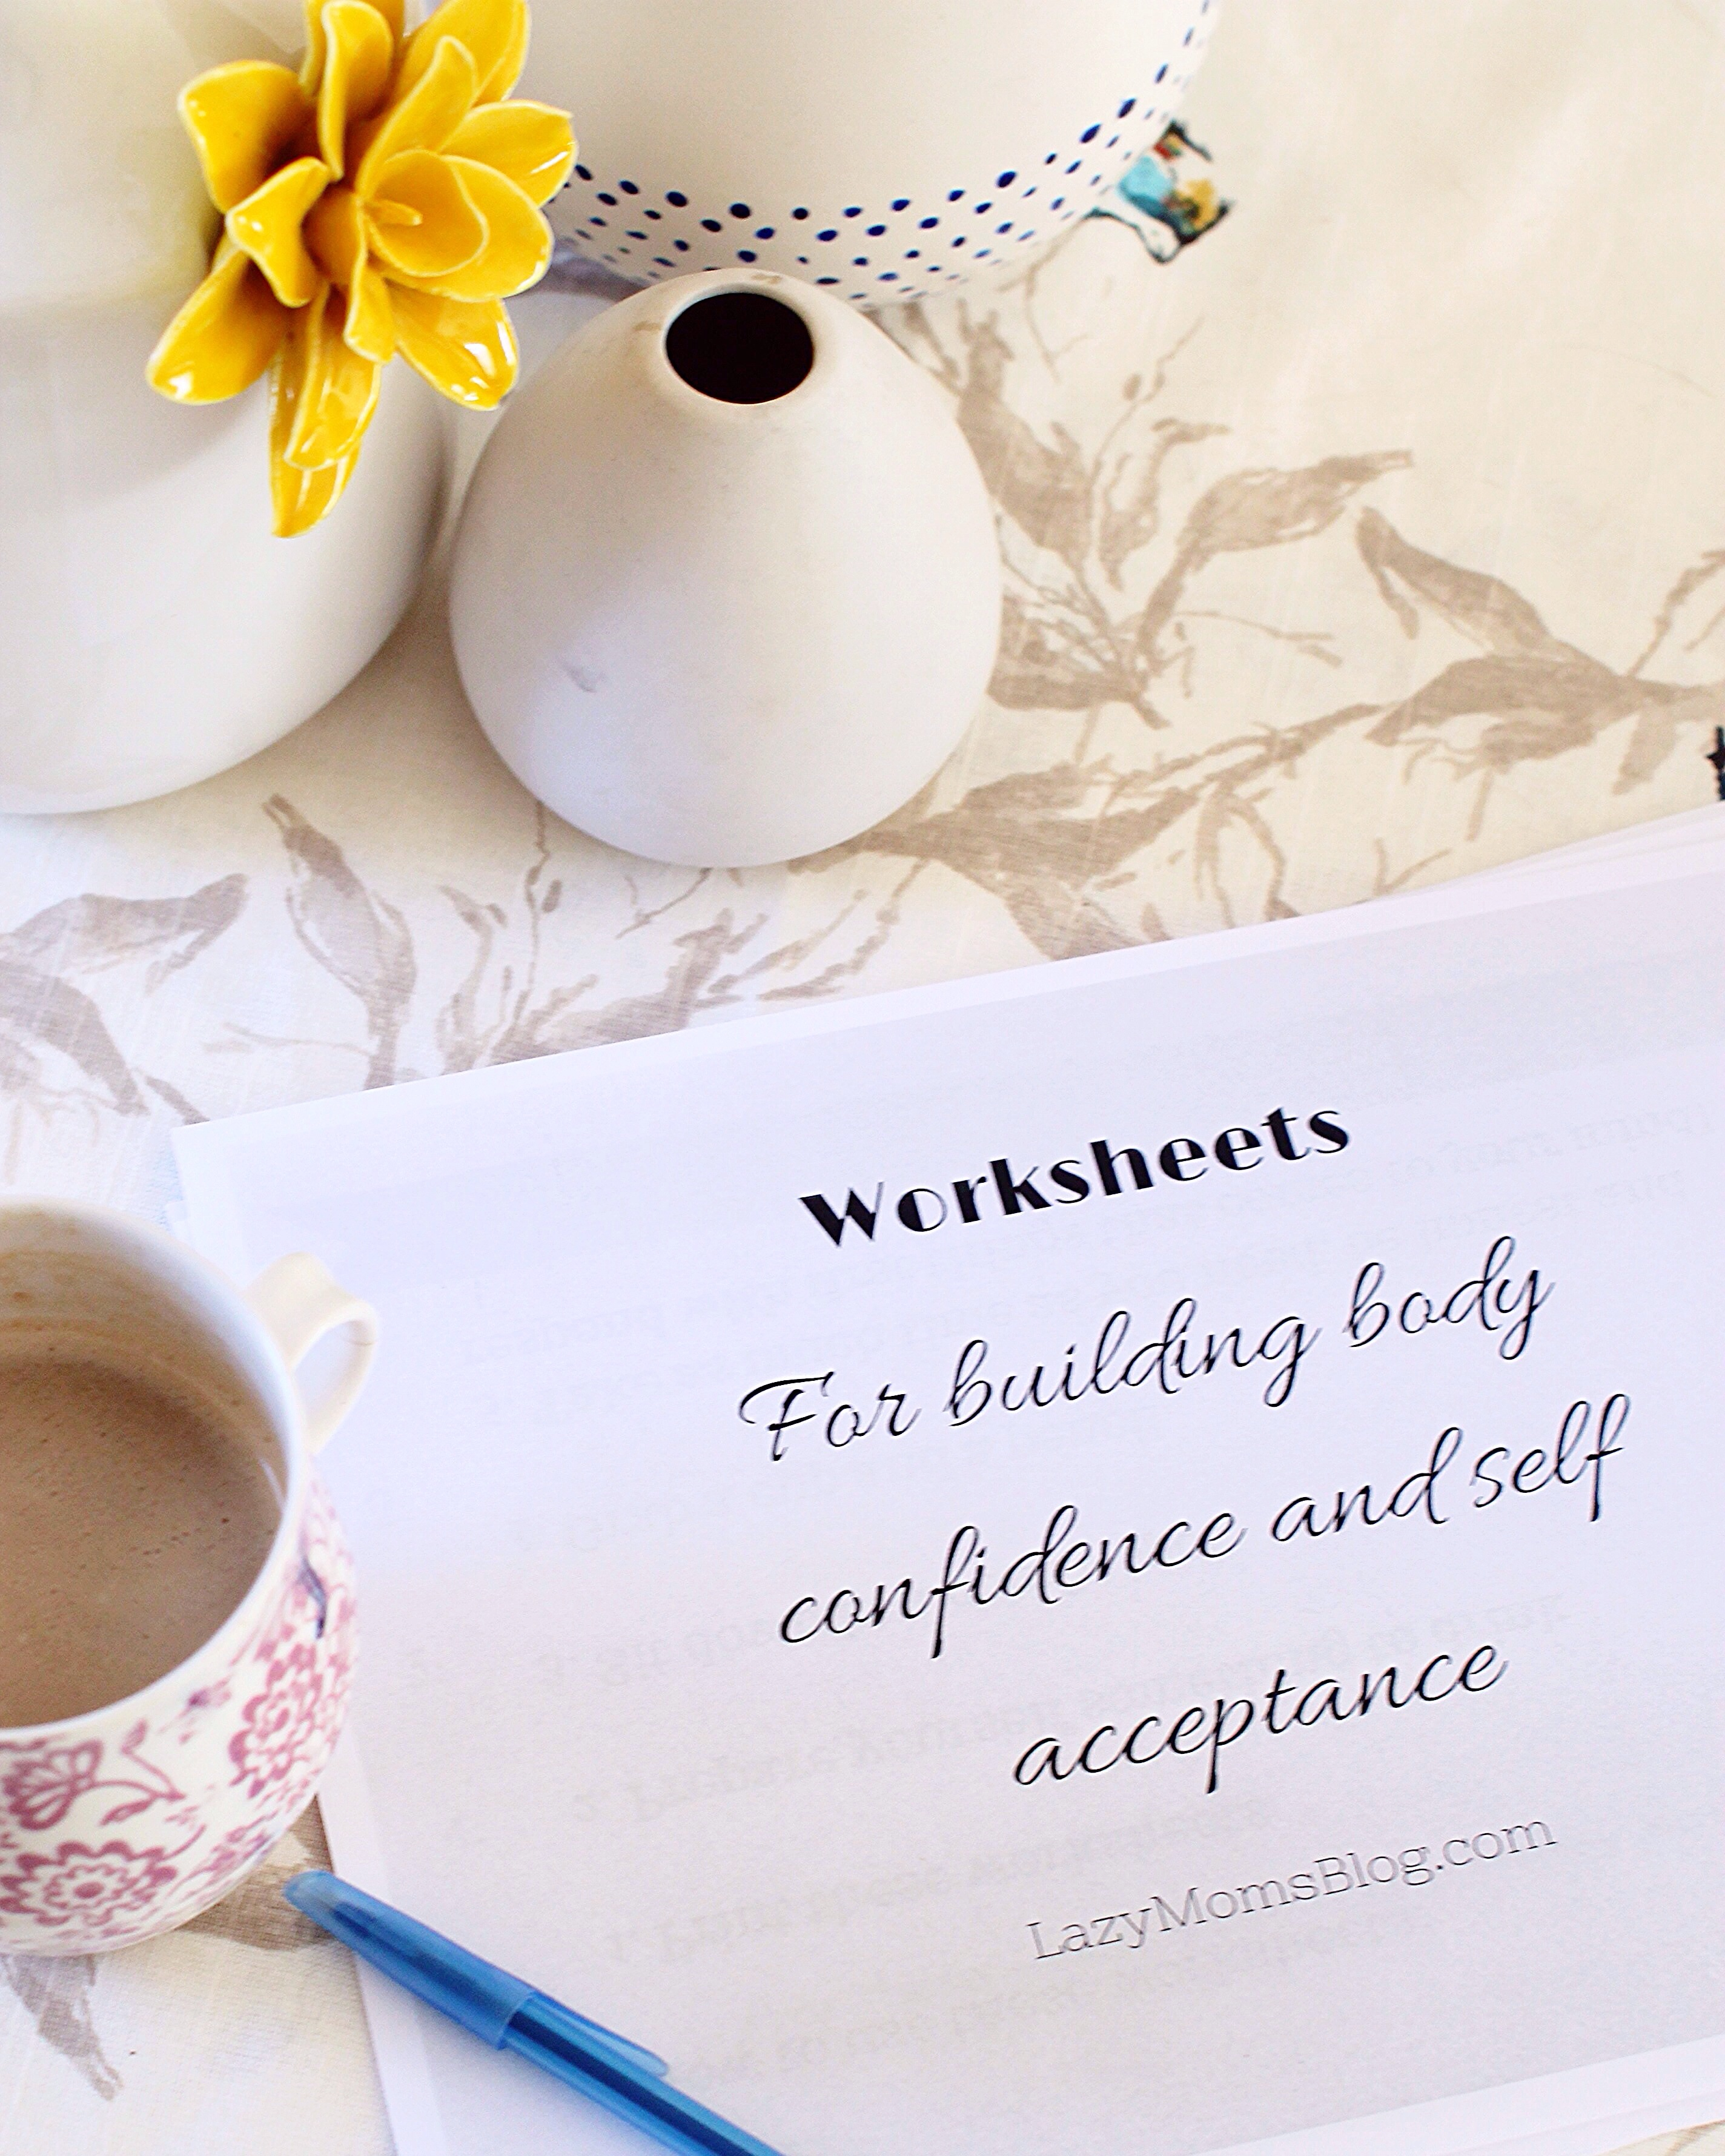 Worksheets For Building Body Confidence And Self